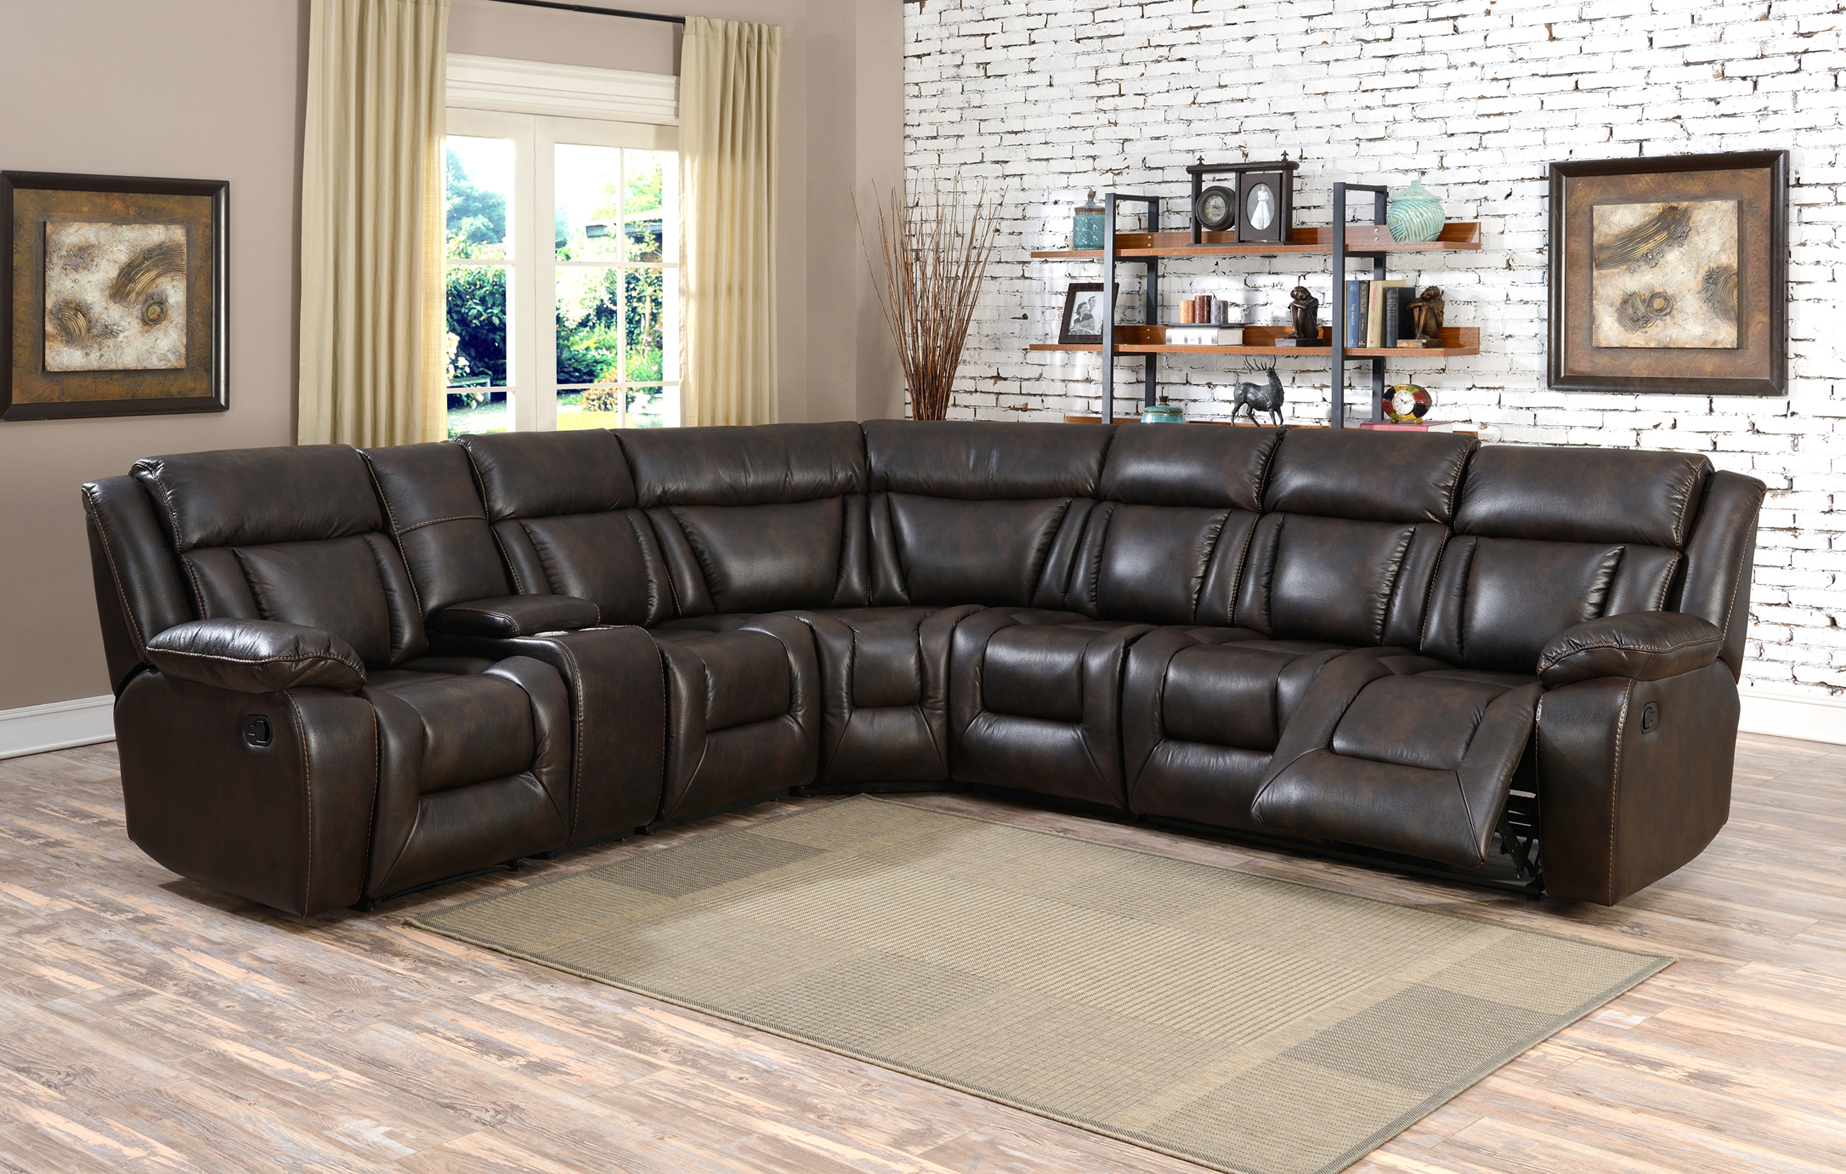 SOFASET-GL 6240 EVERGREEN CHOCOLATE